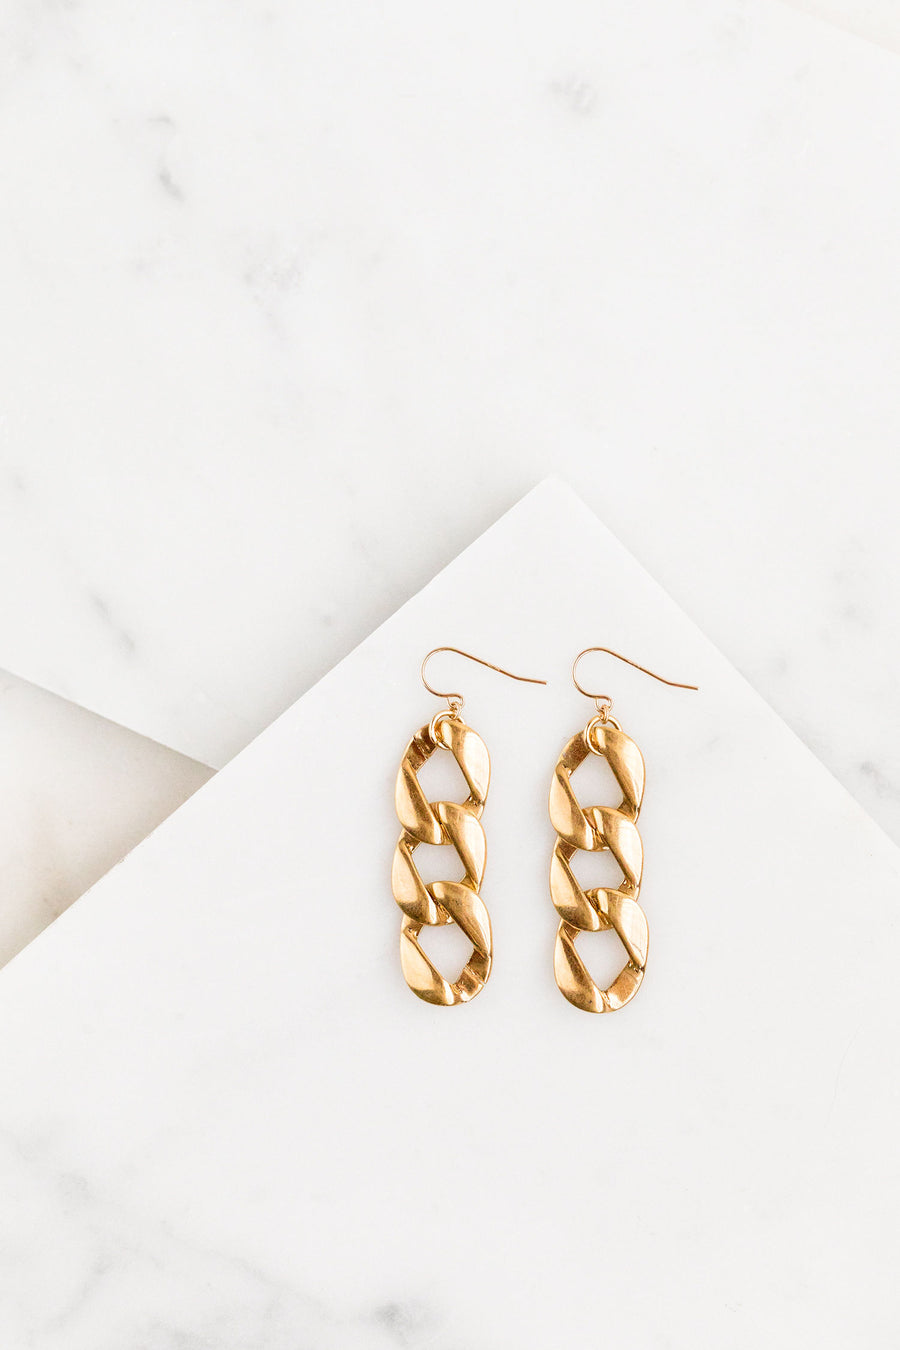 Find the perfect pair of earrings you're looking for from Charme Silkiner! These 14k Gold Chain Drop Earrings are seriously stunning. Perfect to dress or dress down any outfit the Henesy Earrings are the perfect must have for everyone!